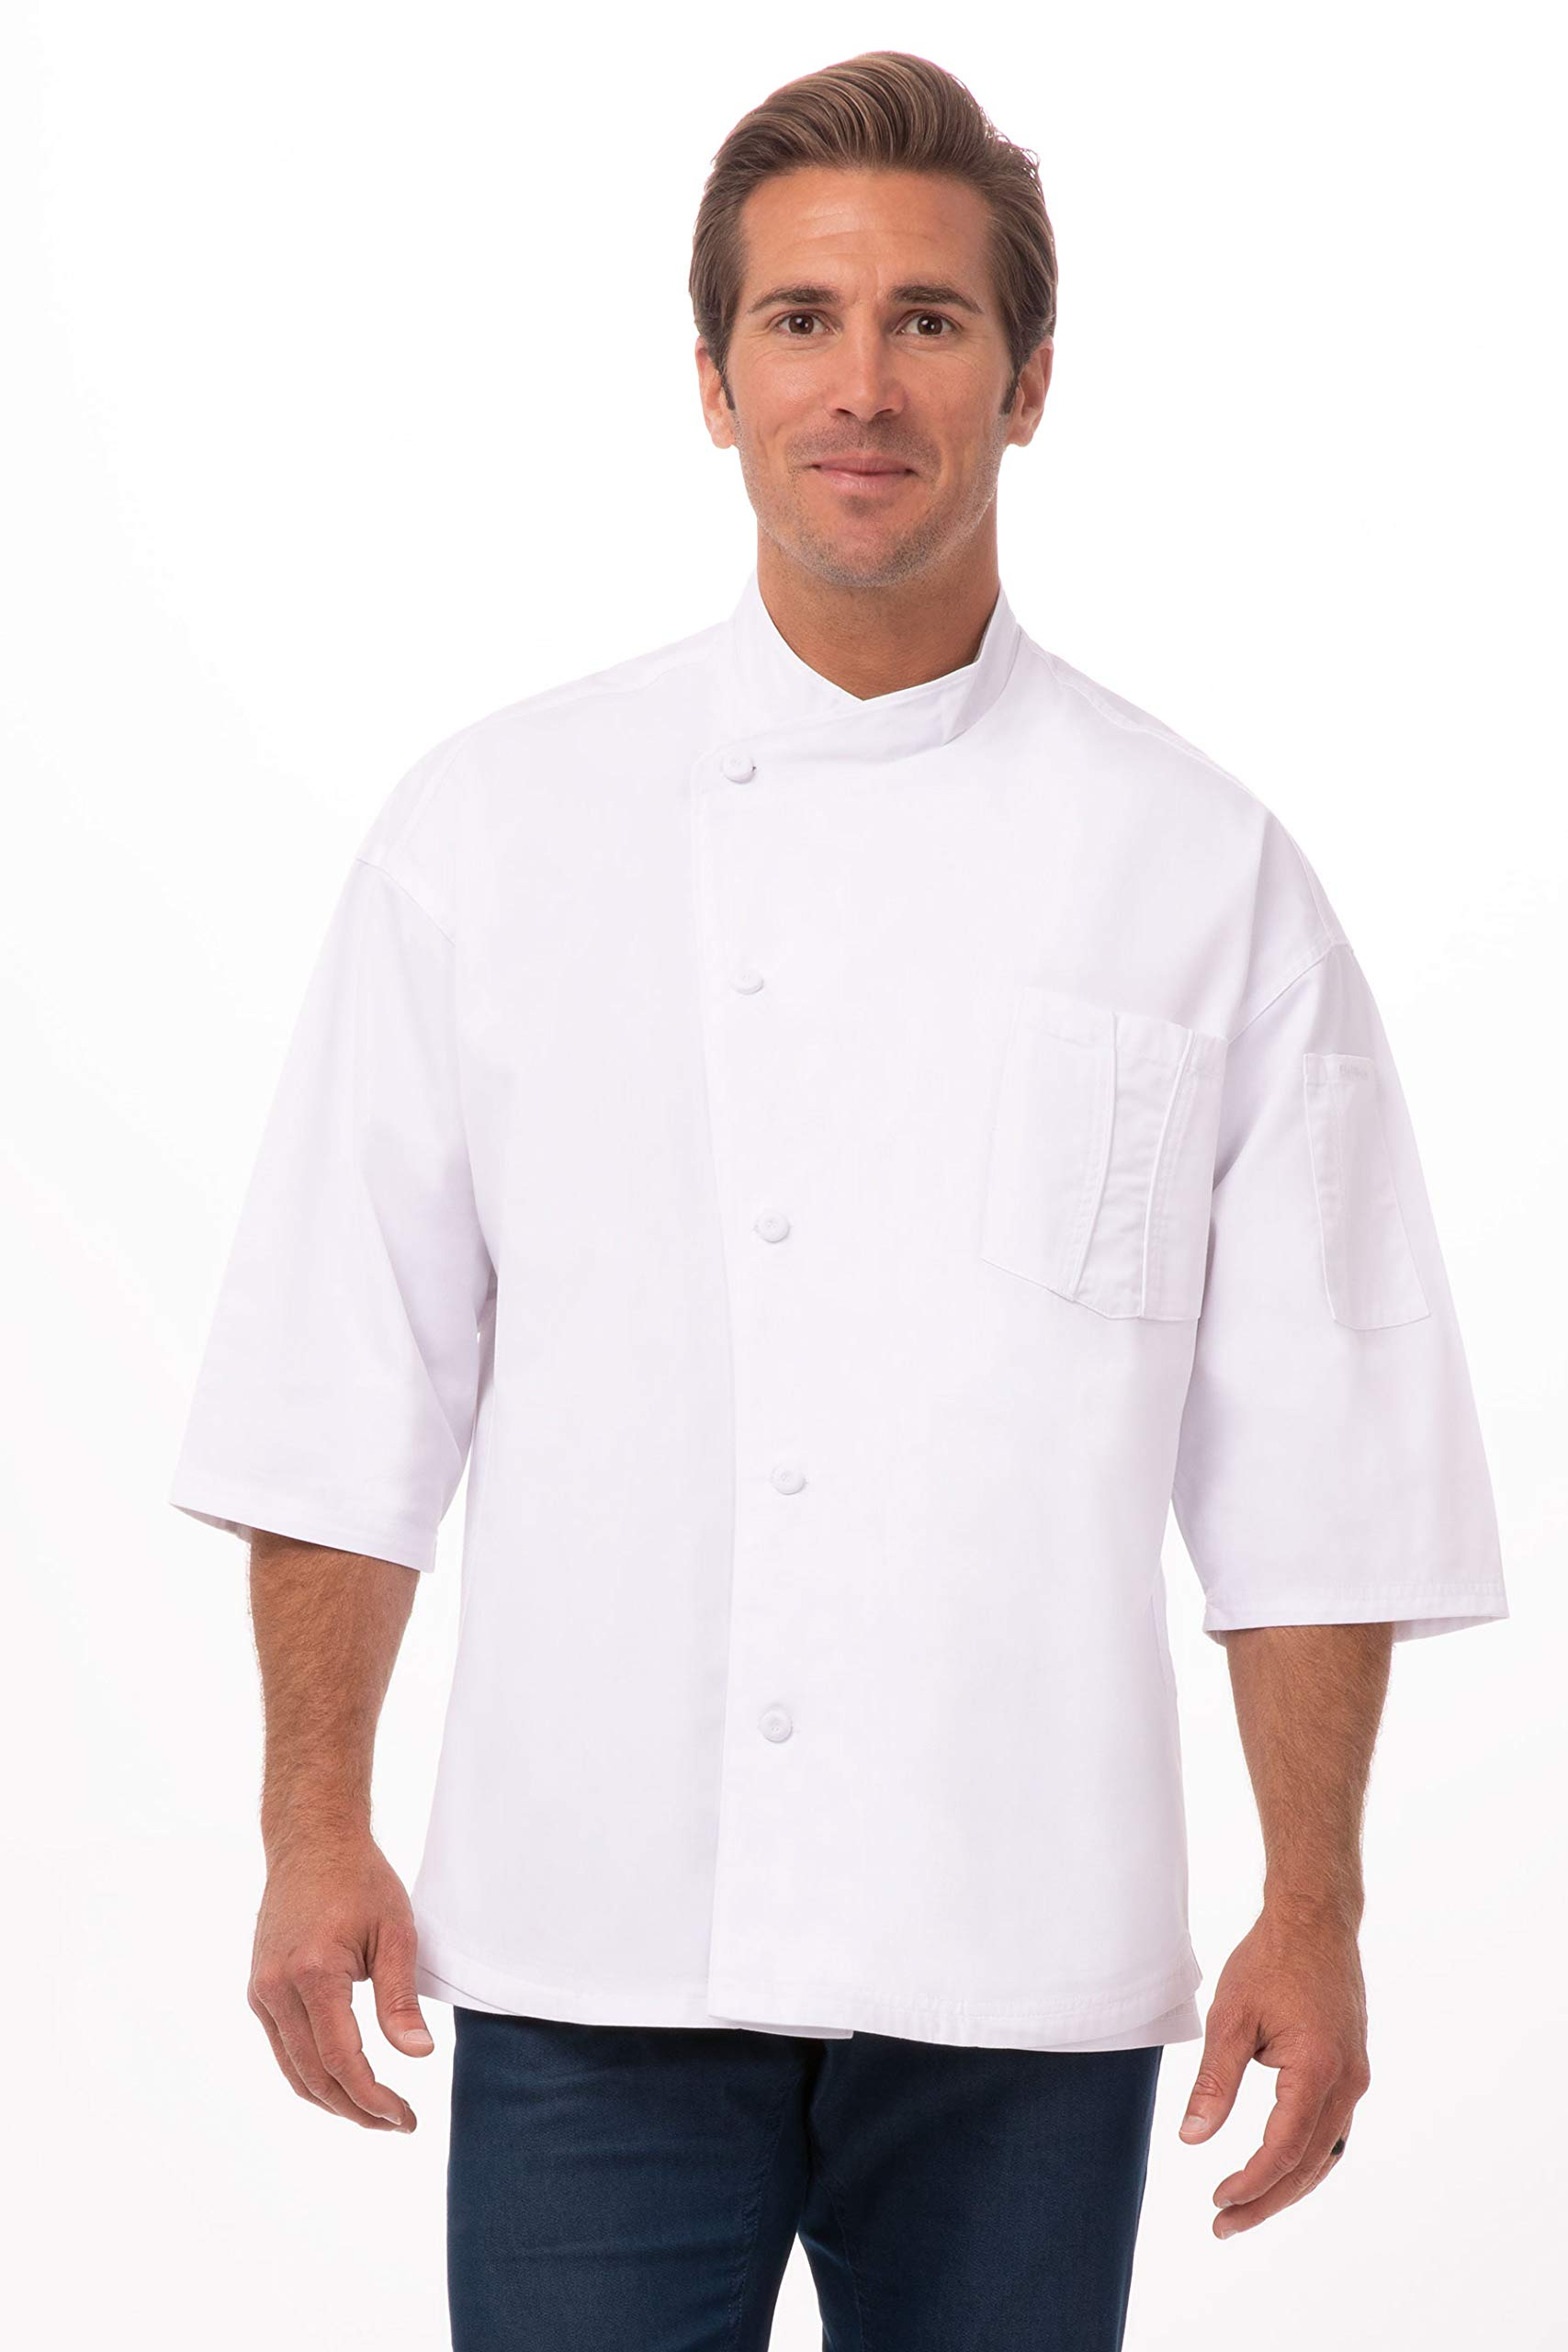 Chef Works Men's Positano Signature Series Chef Coat, W/White Trim, Large by Chef Works